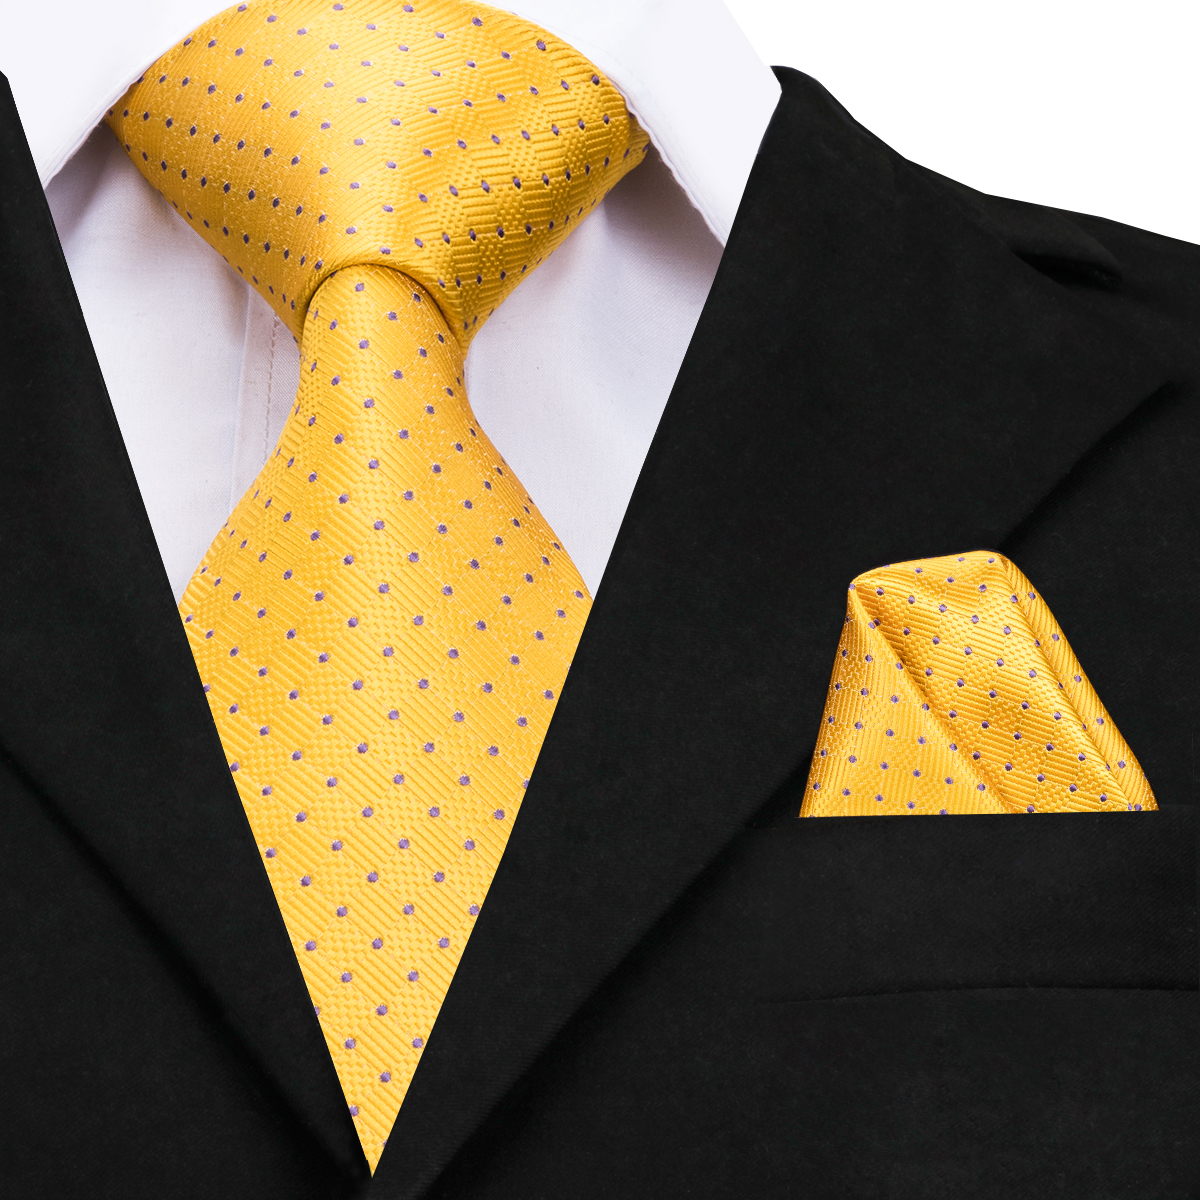 Hi-Tie Gold Silk Tie 2018 New Designer Yellow Dots Large Ties For Men High Quality Hand Jacquard Woven Neck Tie 160cm CZ-009